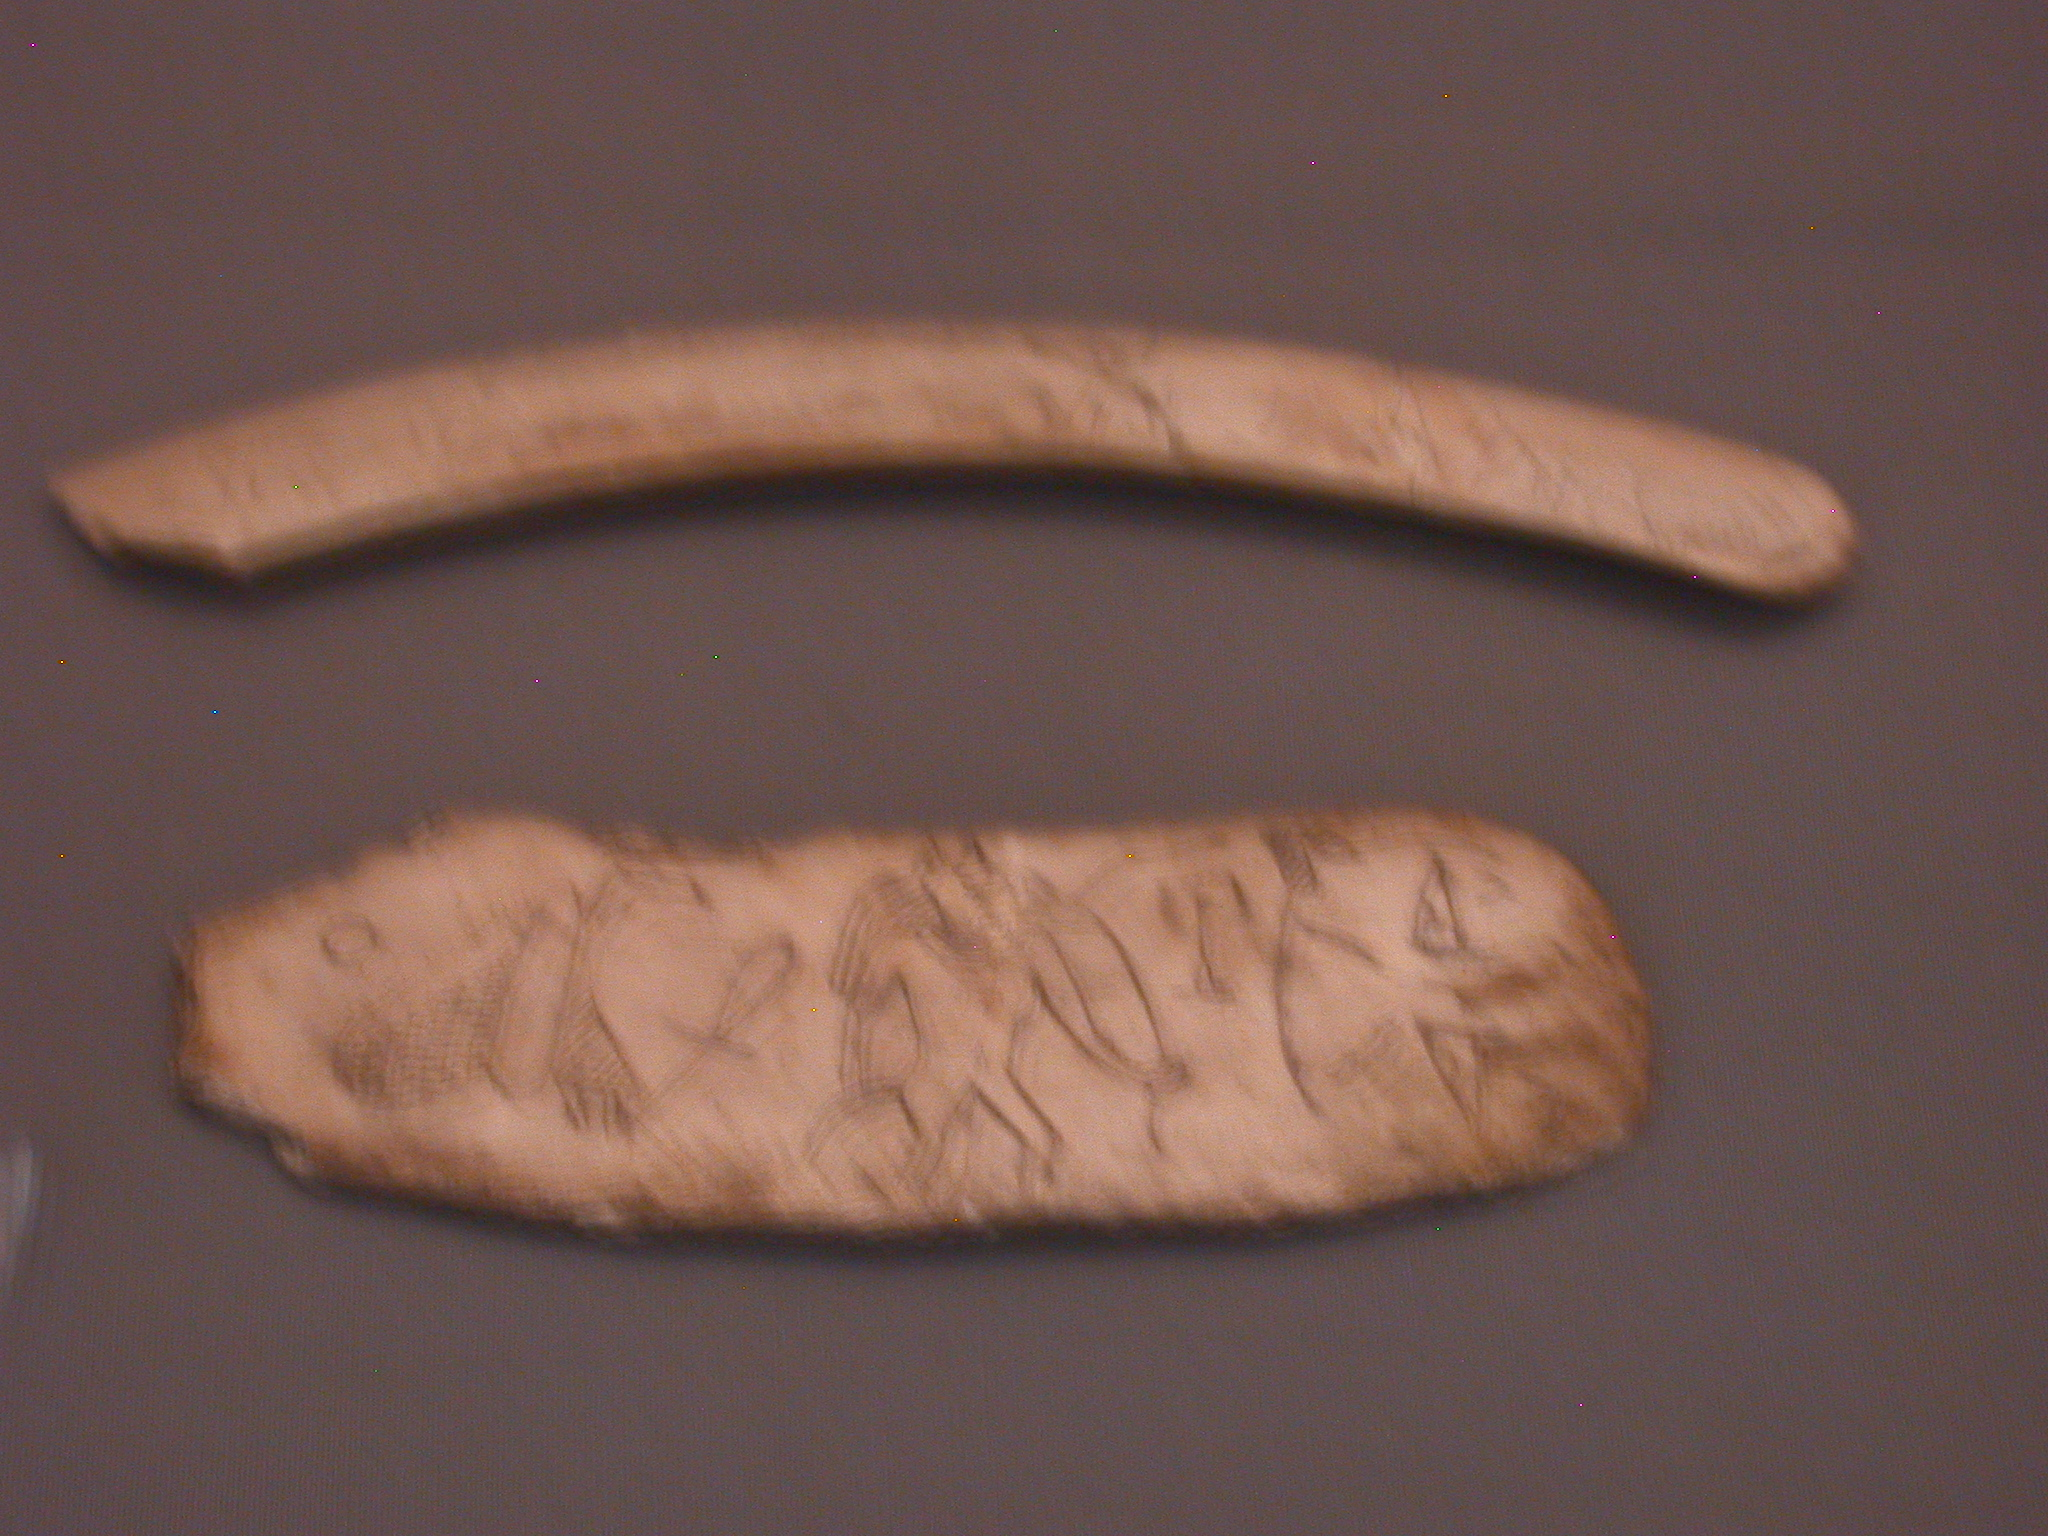 Magic Knives to Offer Protection, Ivory, 13th Dynasty, 1794-1648 BCE, Egypt, in Fitzwilliam Museum, Cambridge, England